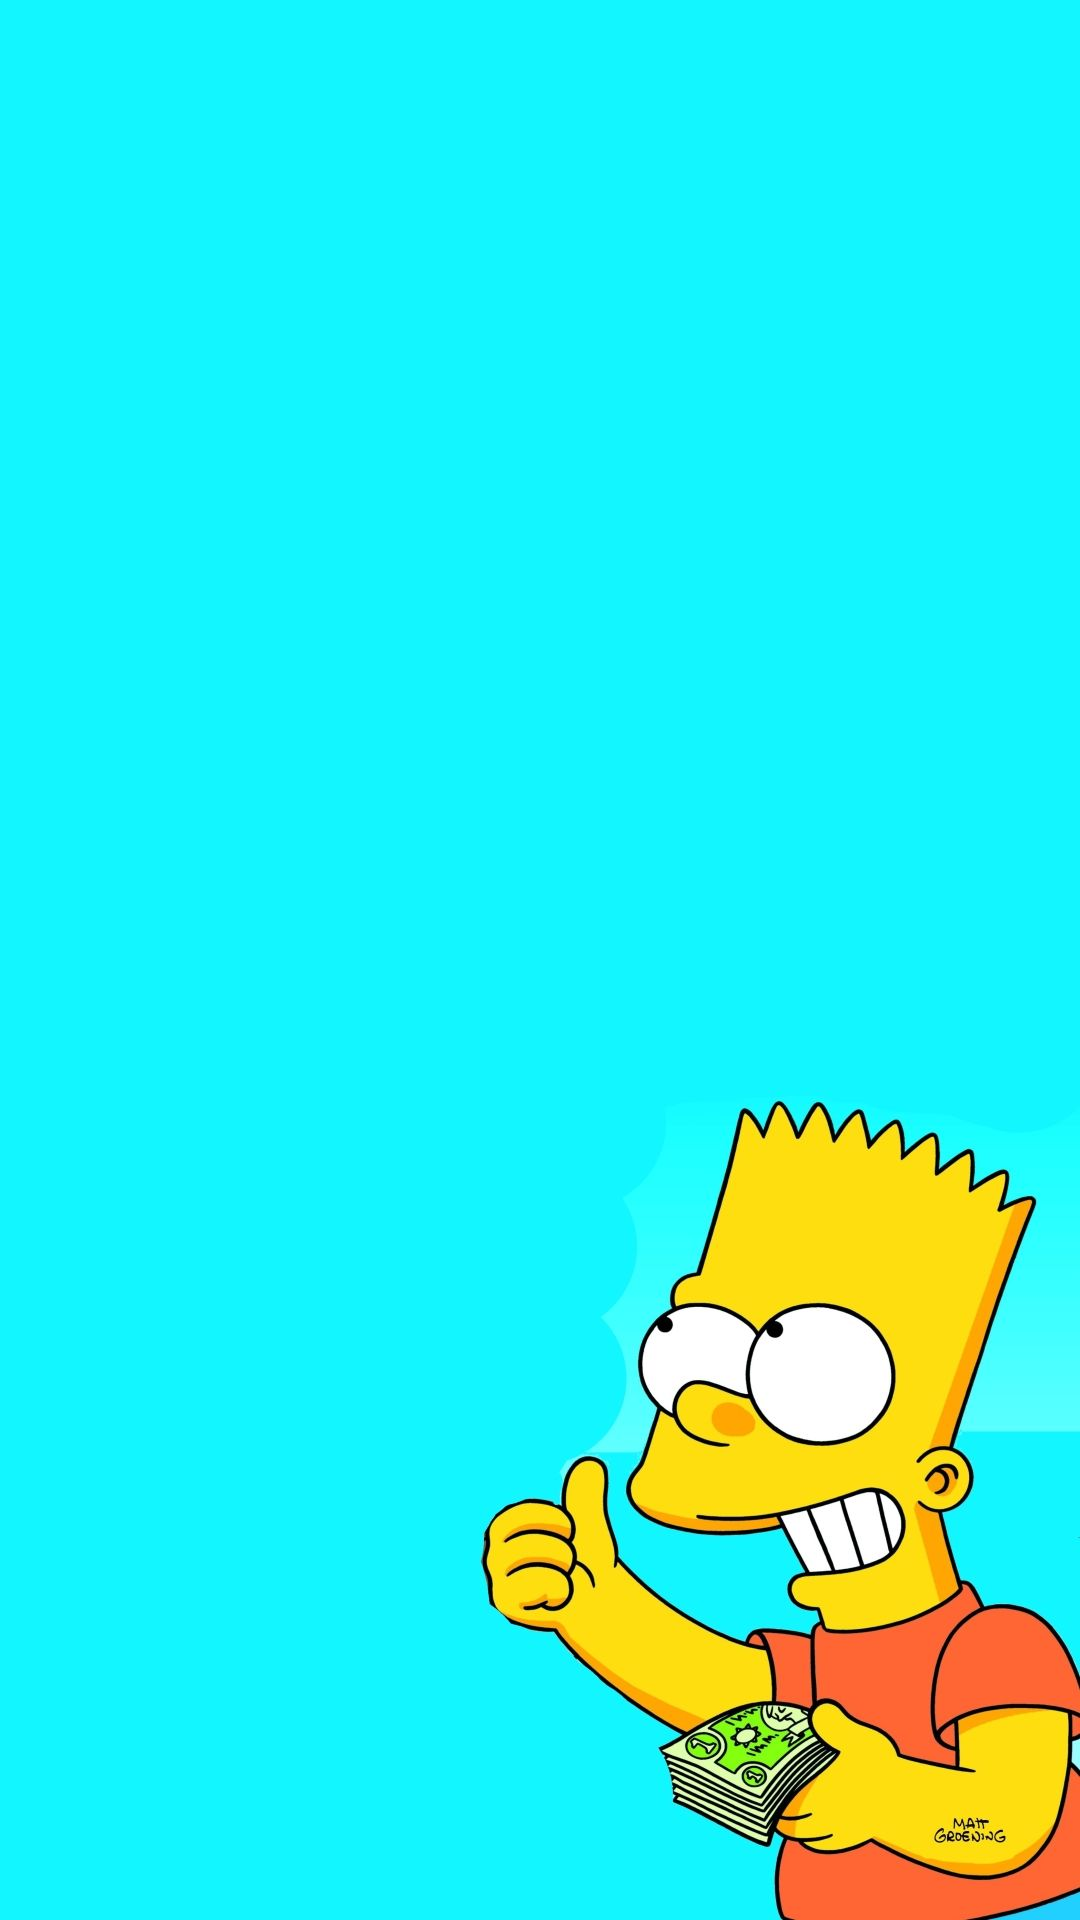 The Simpsons Wallpapers High Resolution And Quality Download Wallpaper Lucu Kartun Lucu